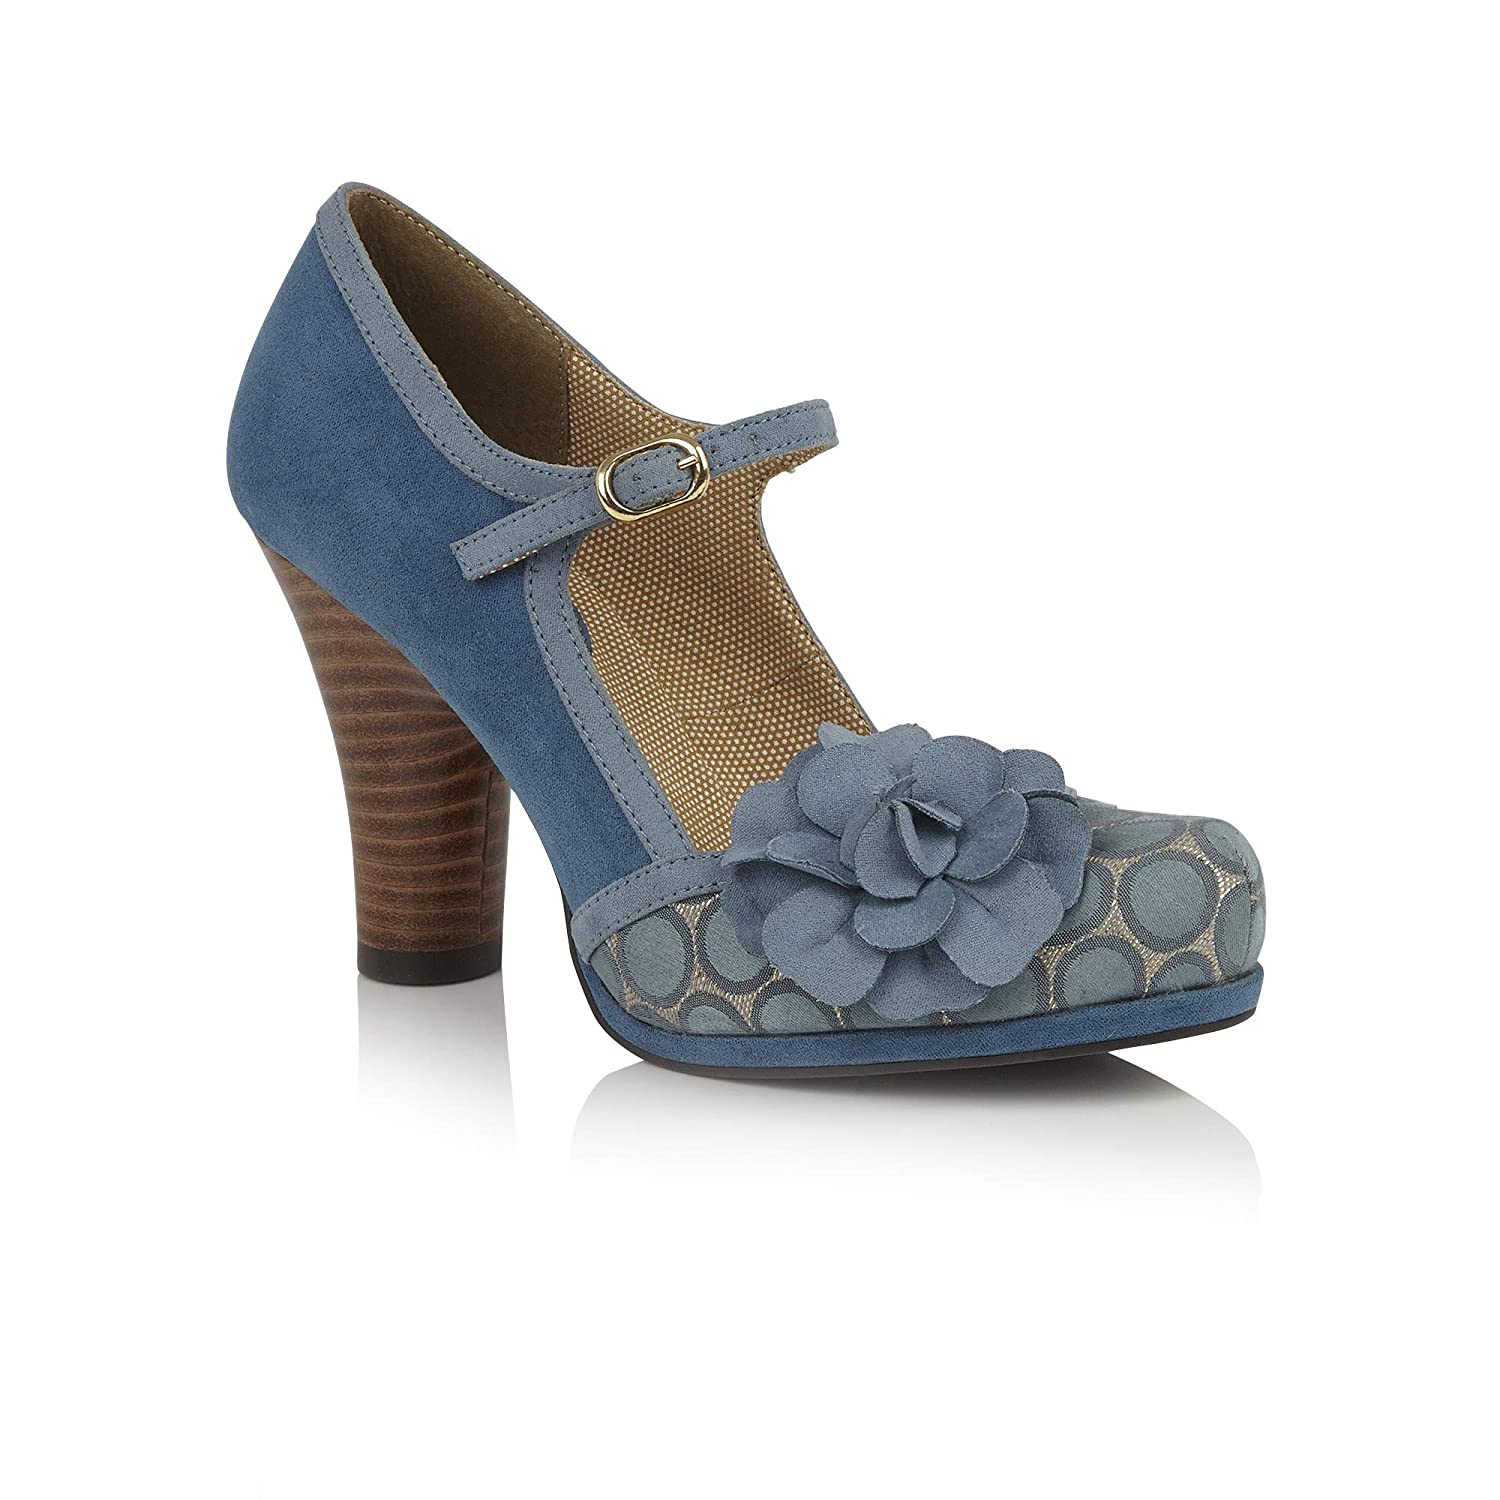 Ruby Shoo Ladies Hannah Teal 1950'S Vintage Inspirouge chaussures 092976-UK 9 (EU 42)